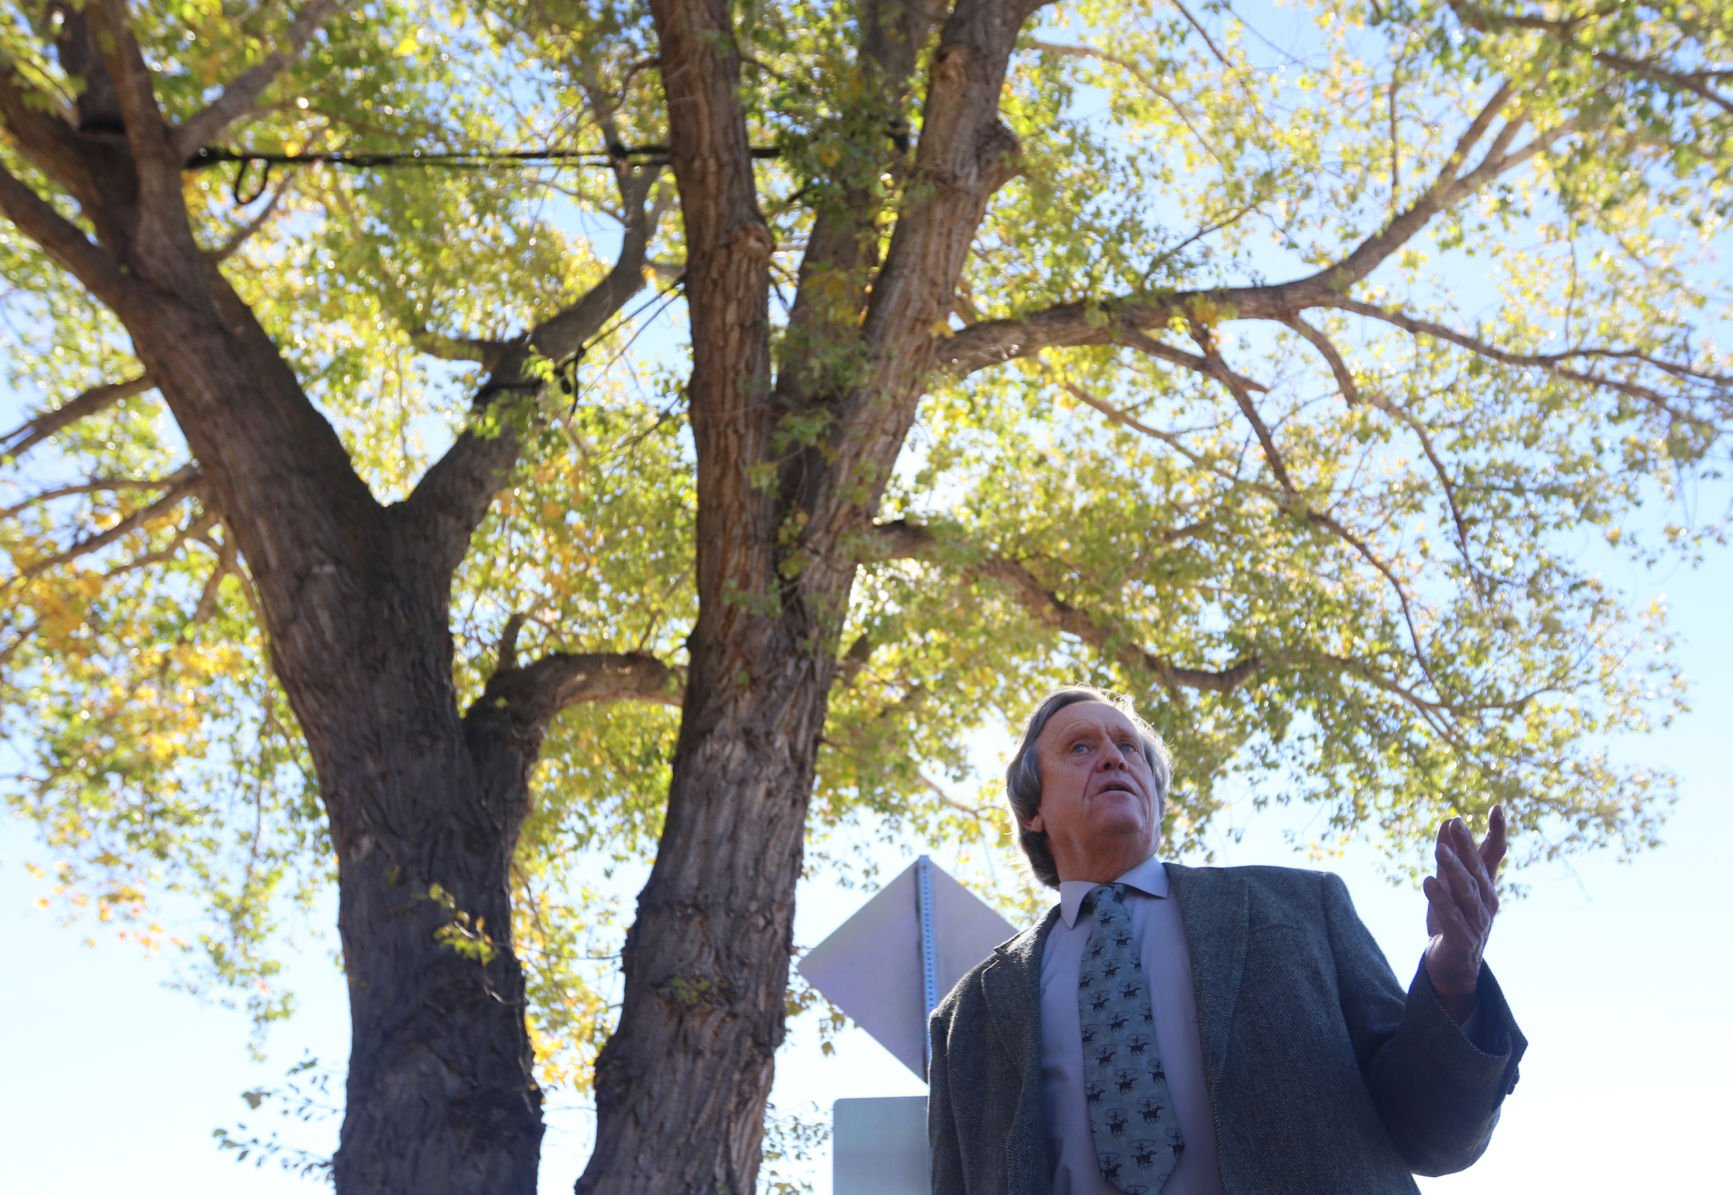 City hall cottonwood tree may get reprieve after Laybourn's protest | Wyoming News